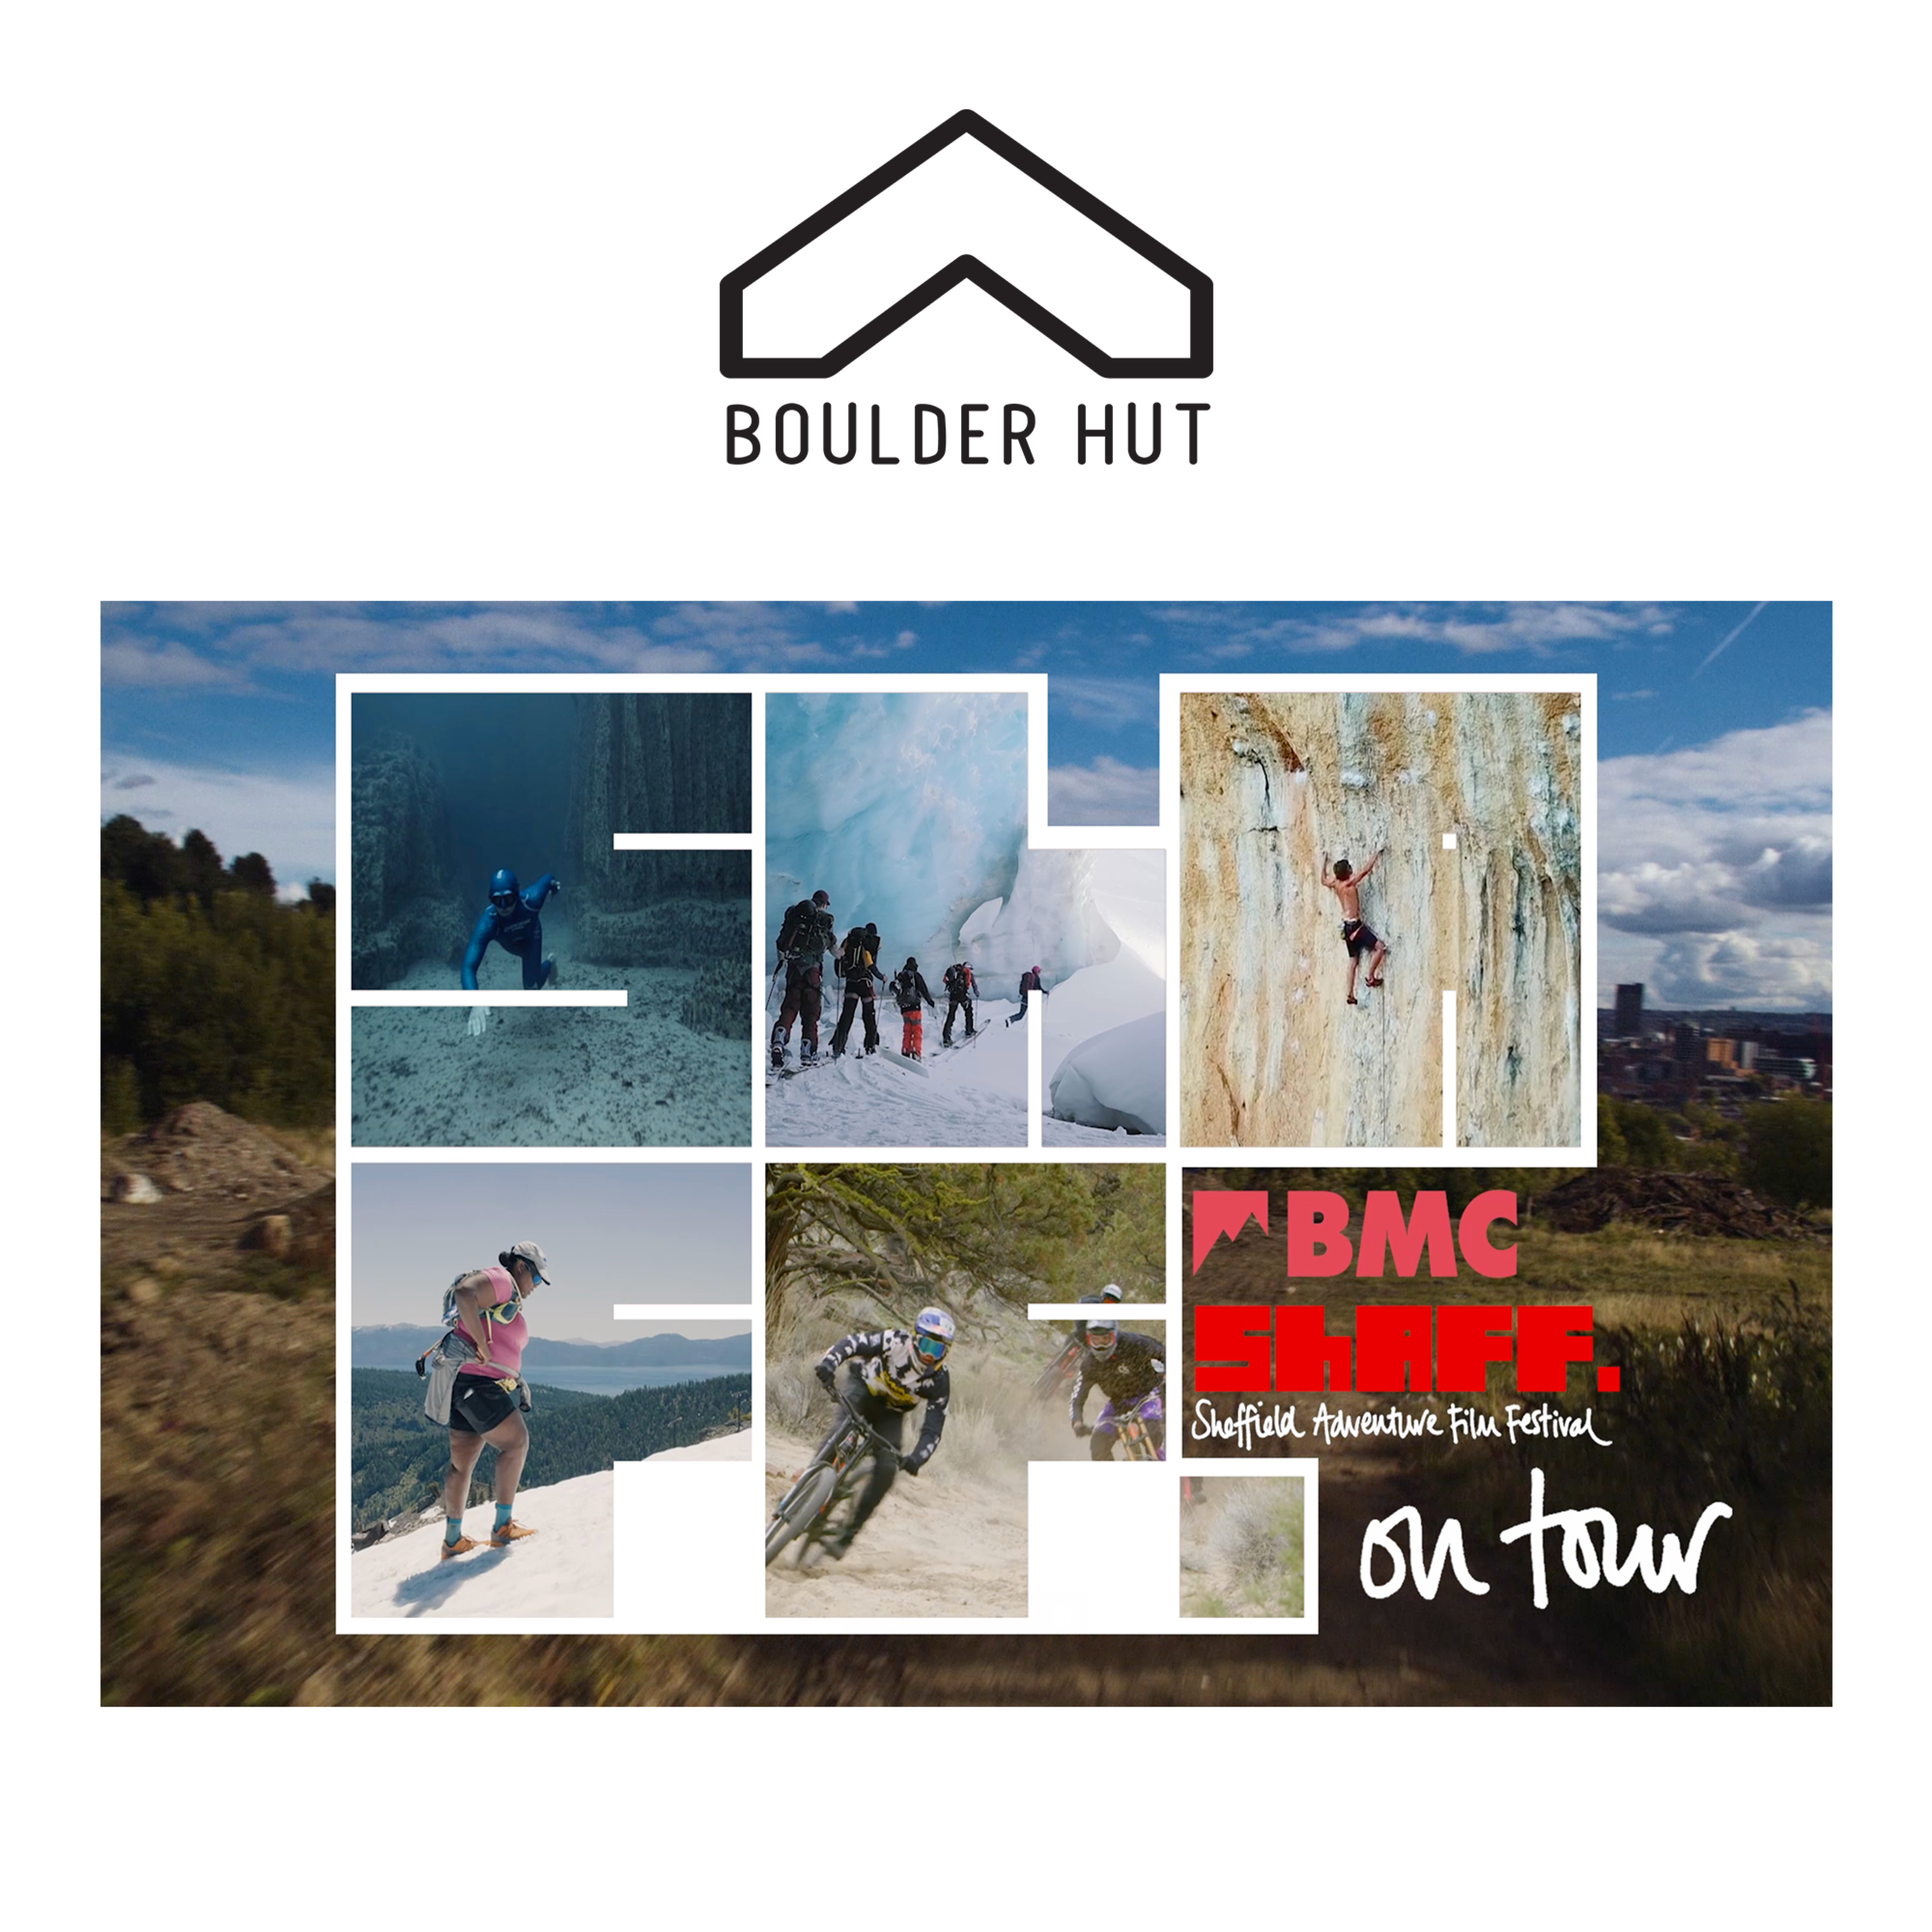 The Best of ShAFF 2020 with Boulder Hut